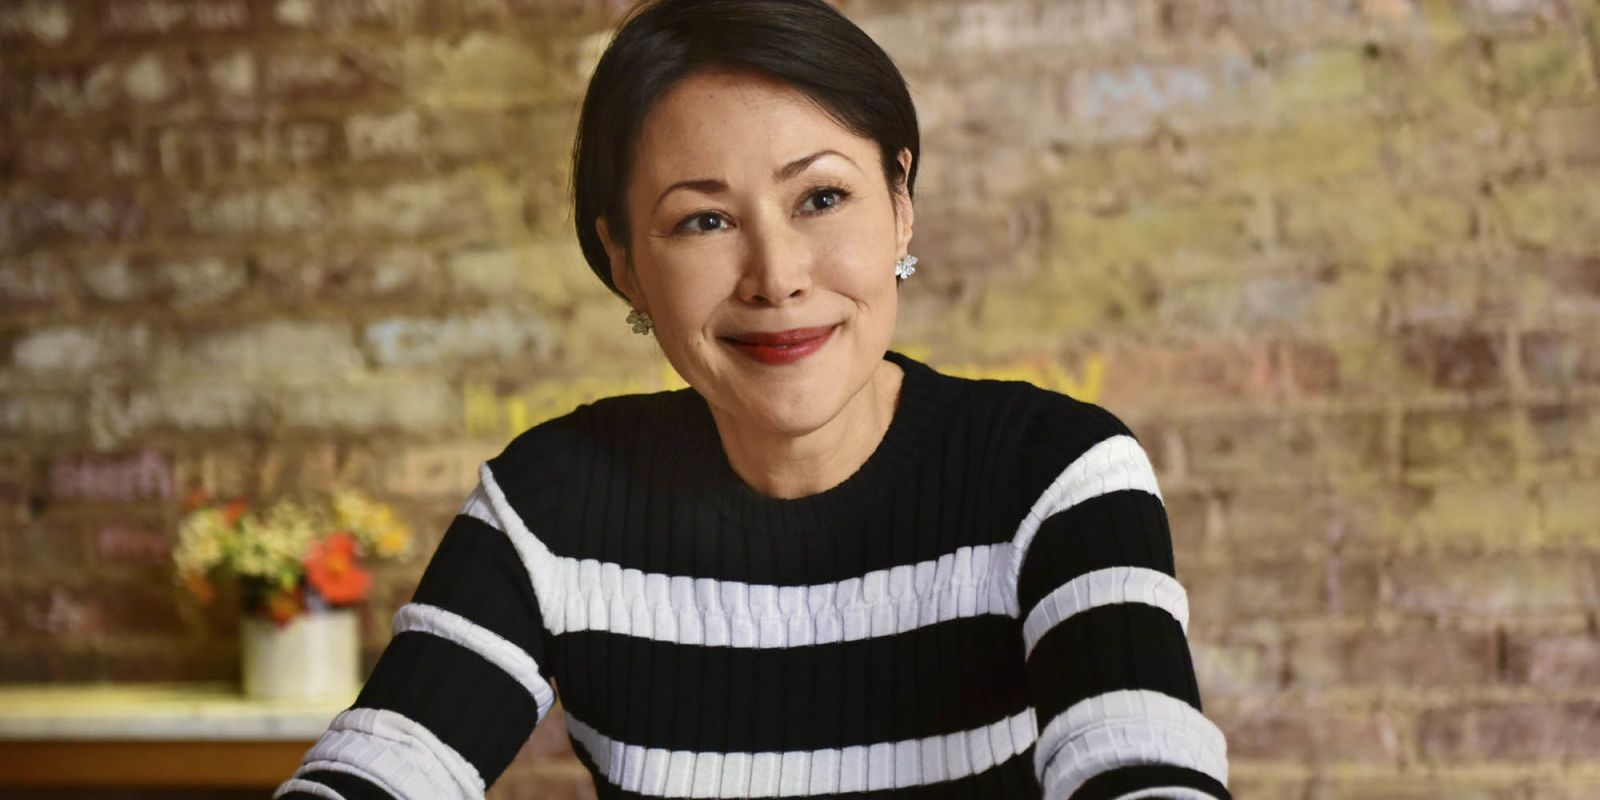 Ann Curry Says Her Parents Love Story Inspired Her to Become a Journalist